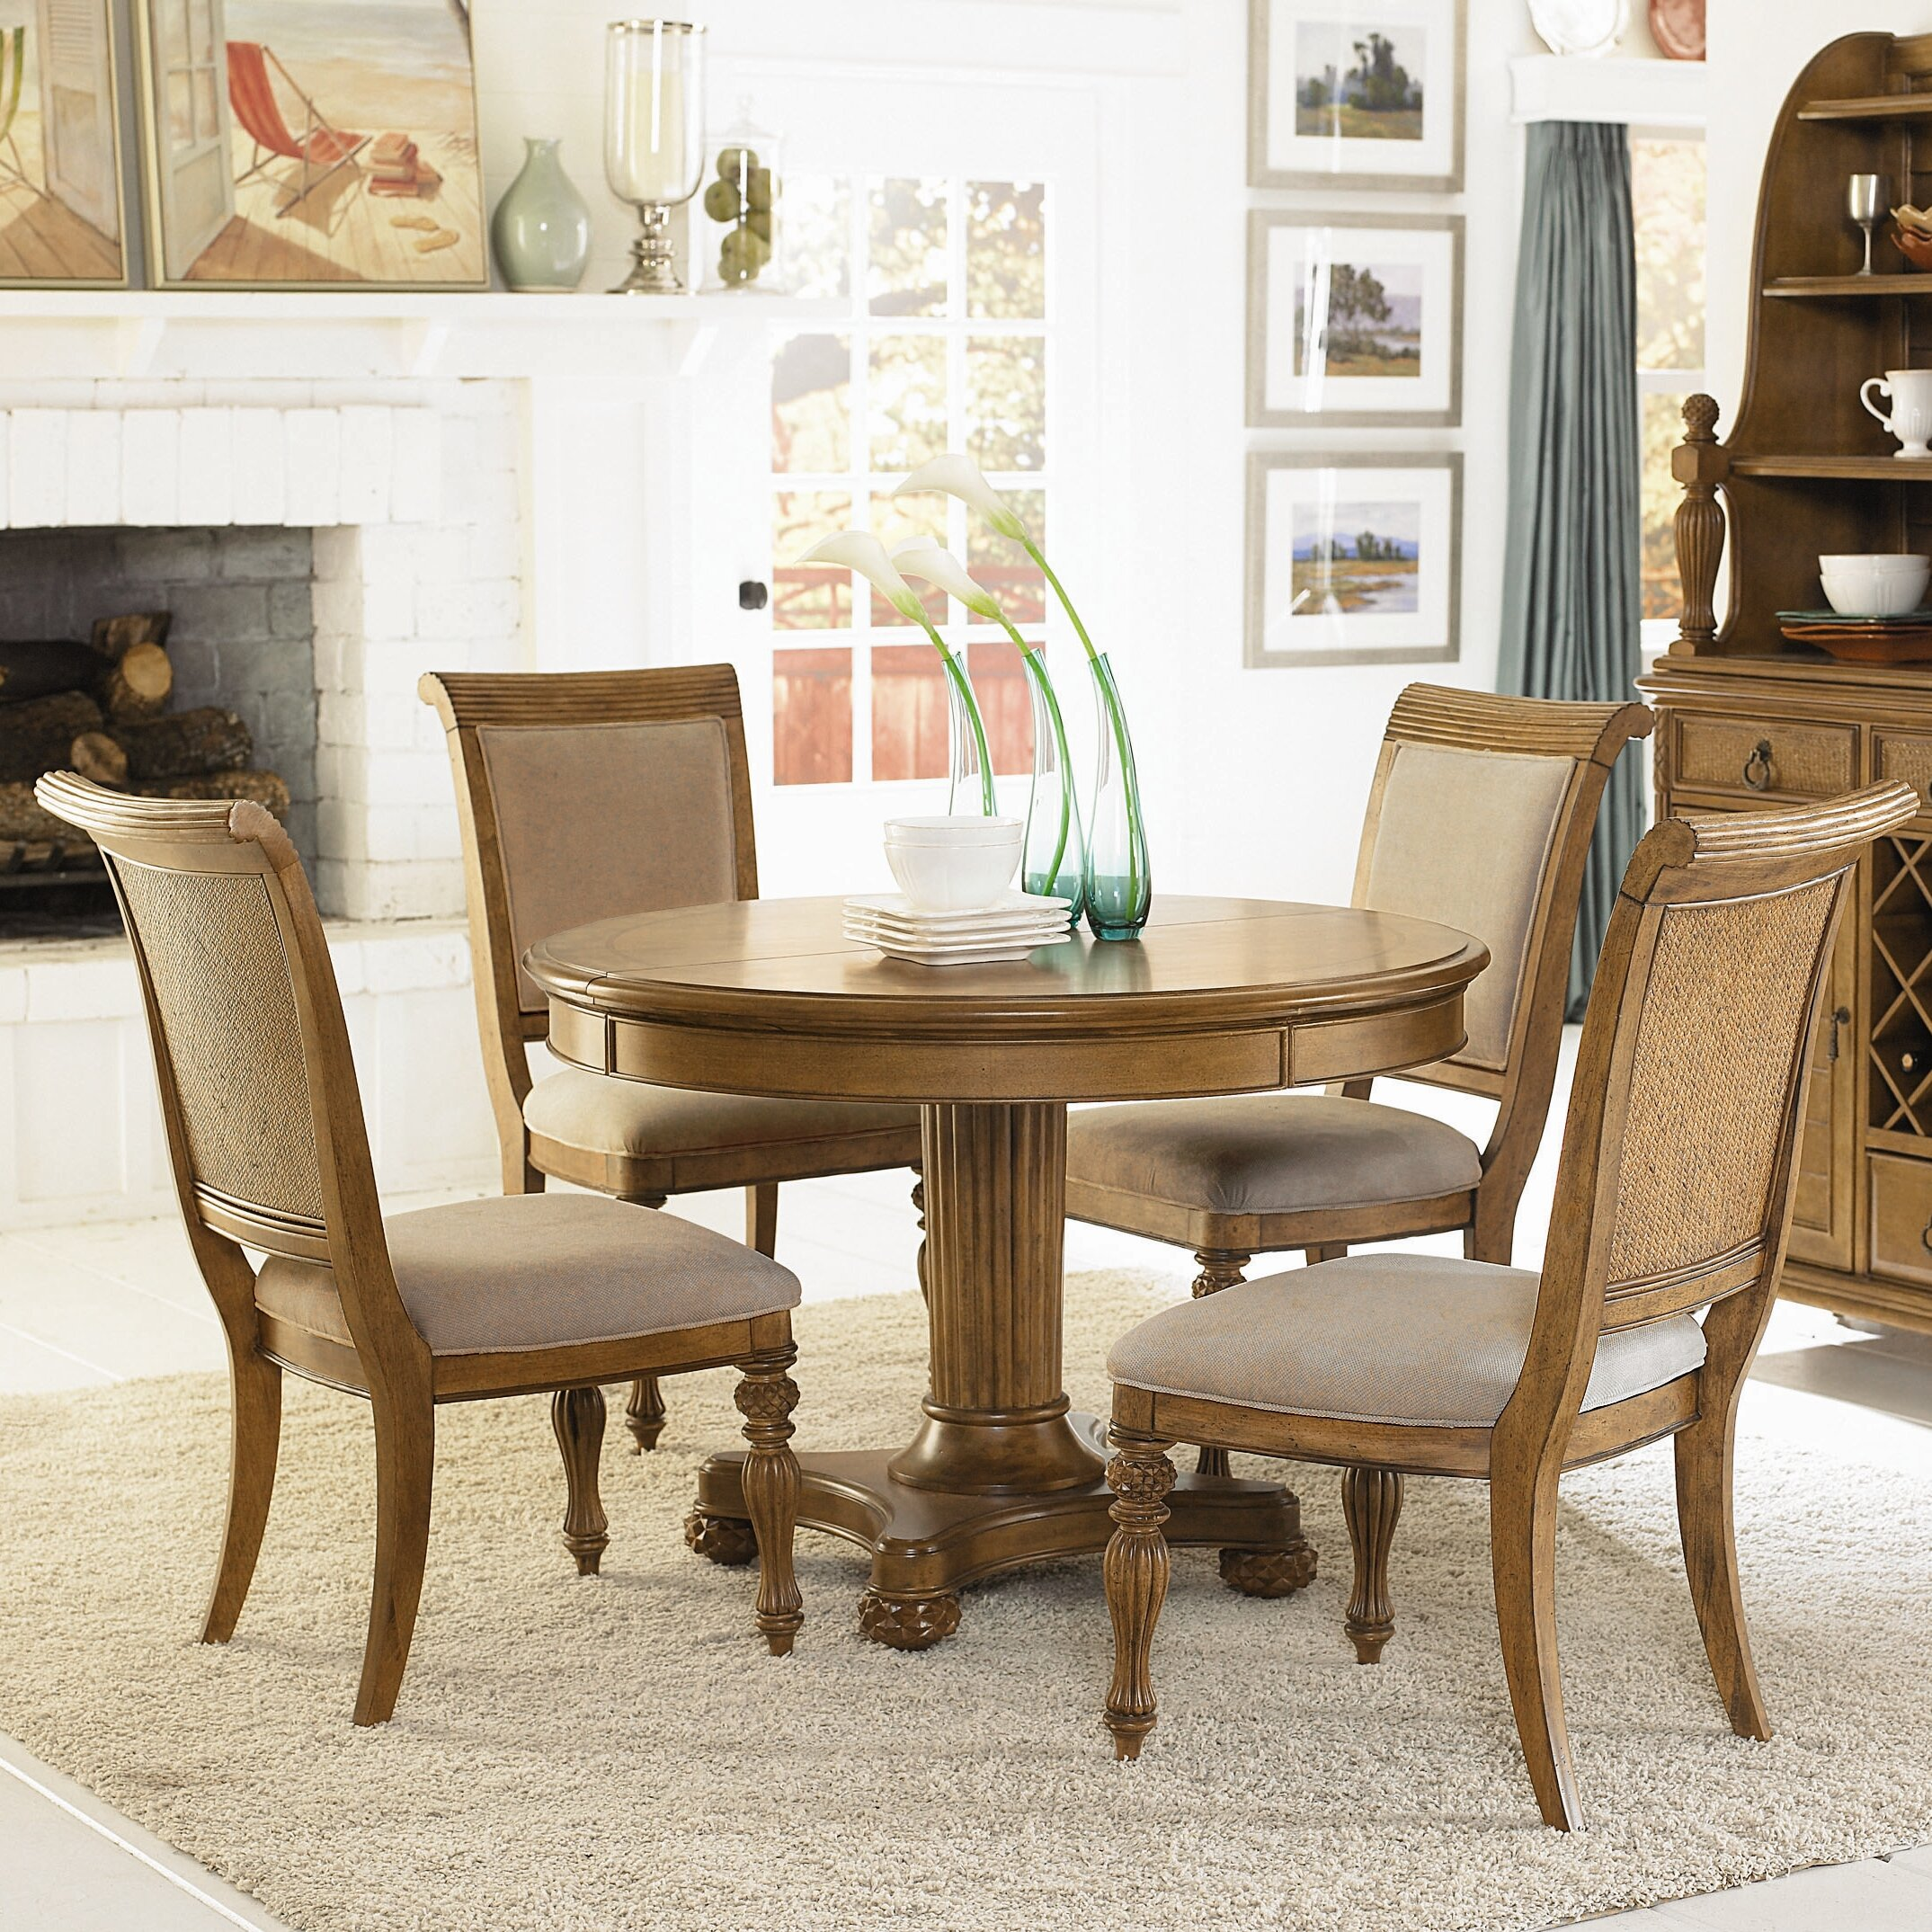 American Drew Dining Room Furniture: American Drew Grand Isle 7 Piece Dining Set & Reviews